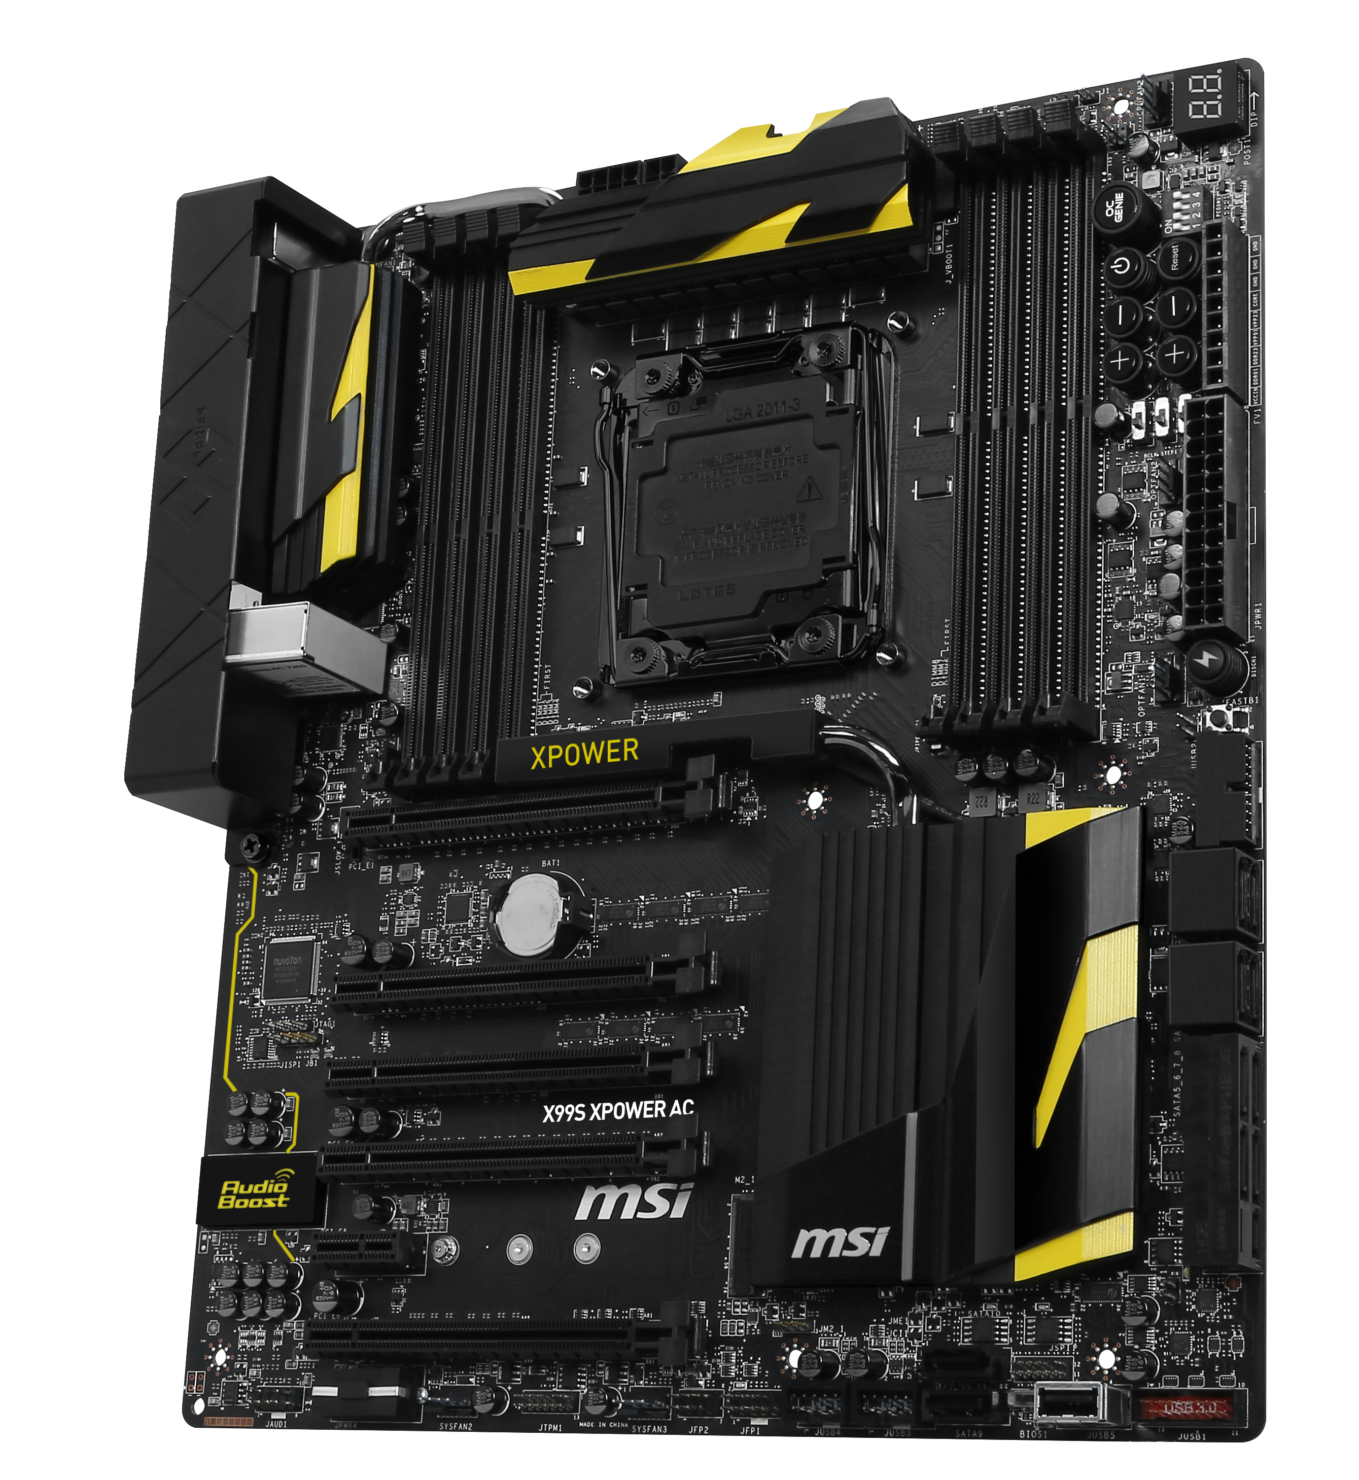 msi-x99s-xpower-ac-motherboard_3